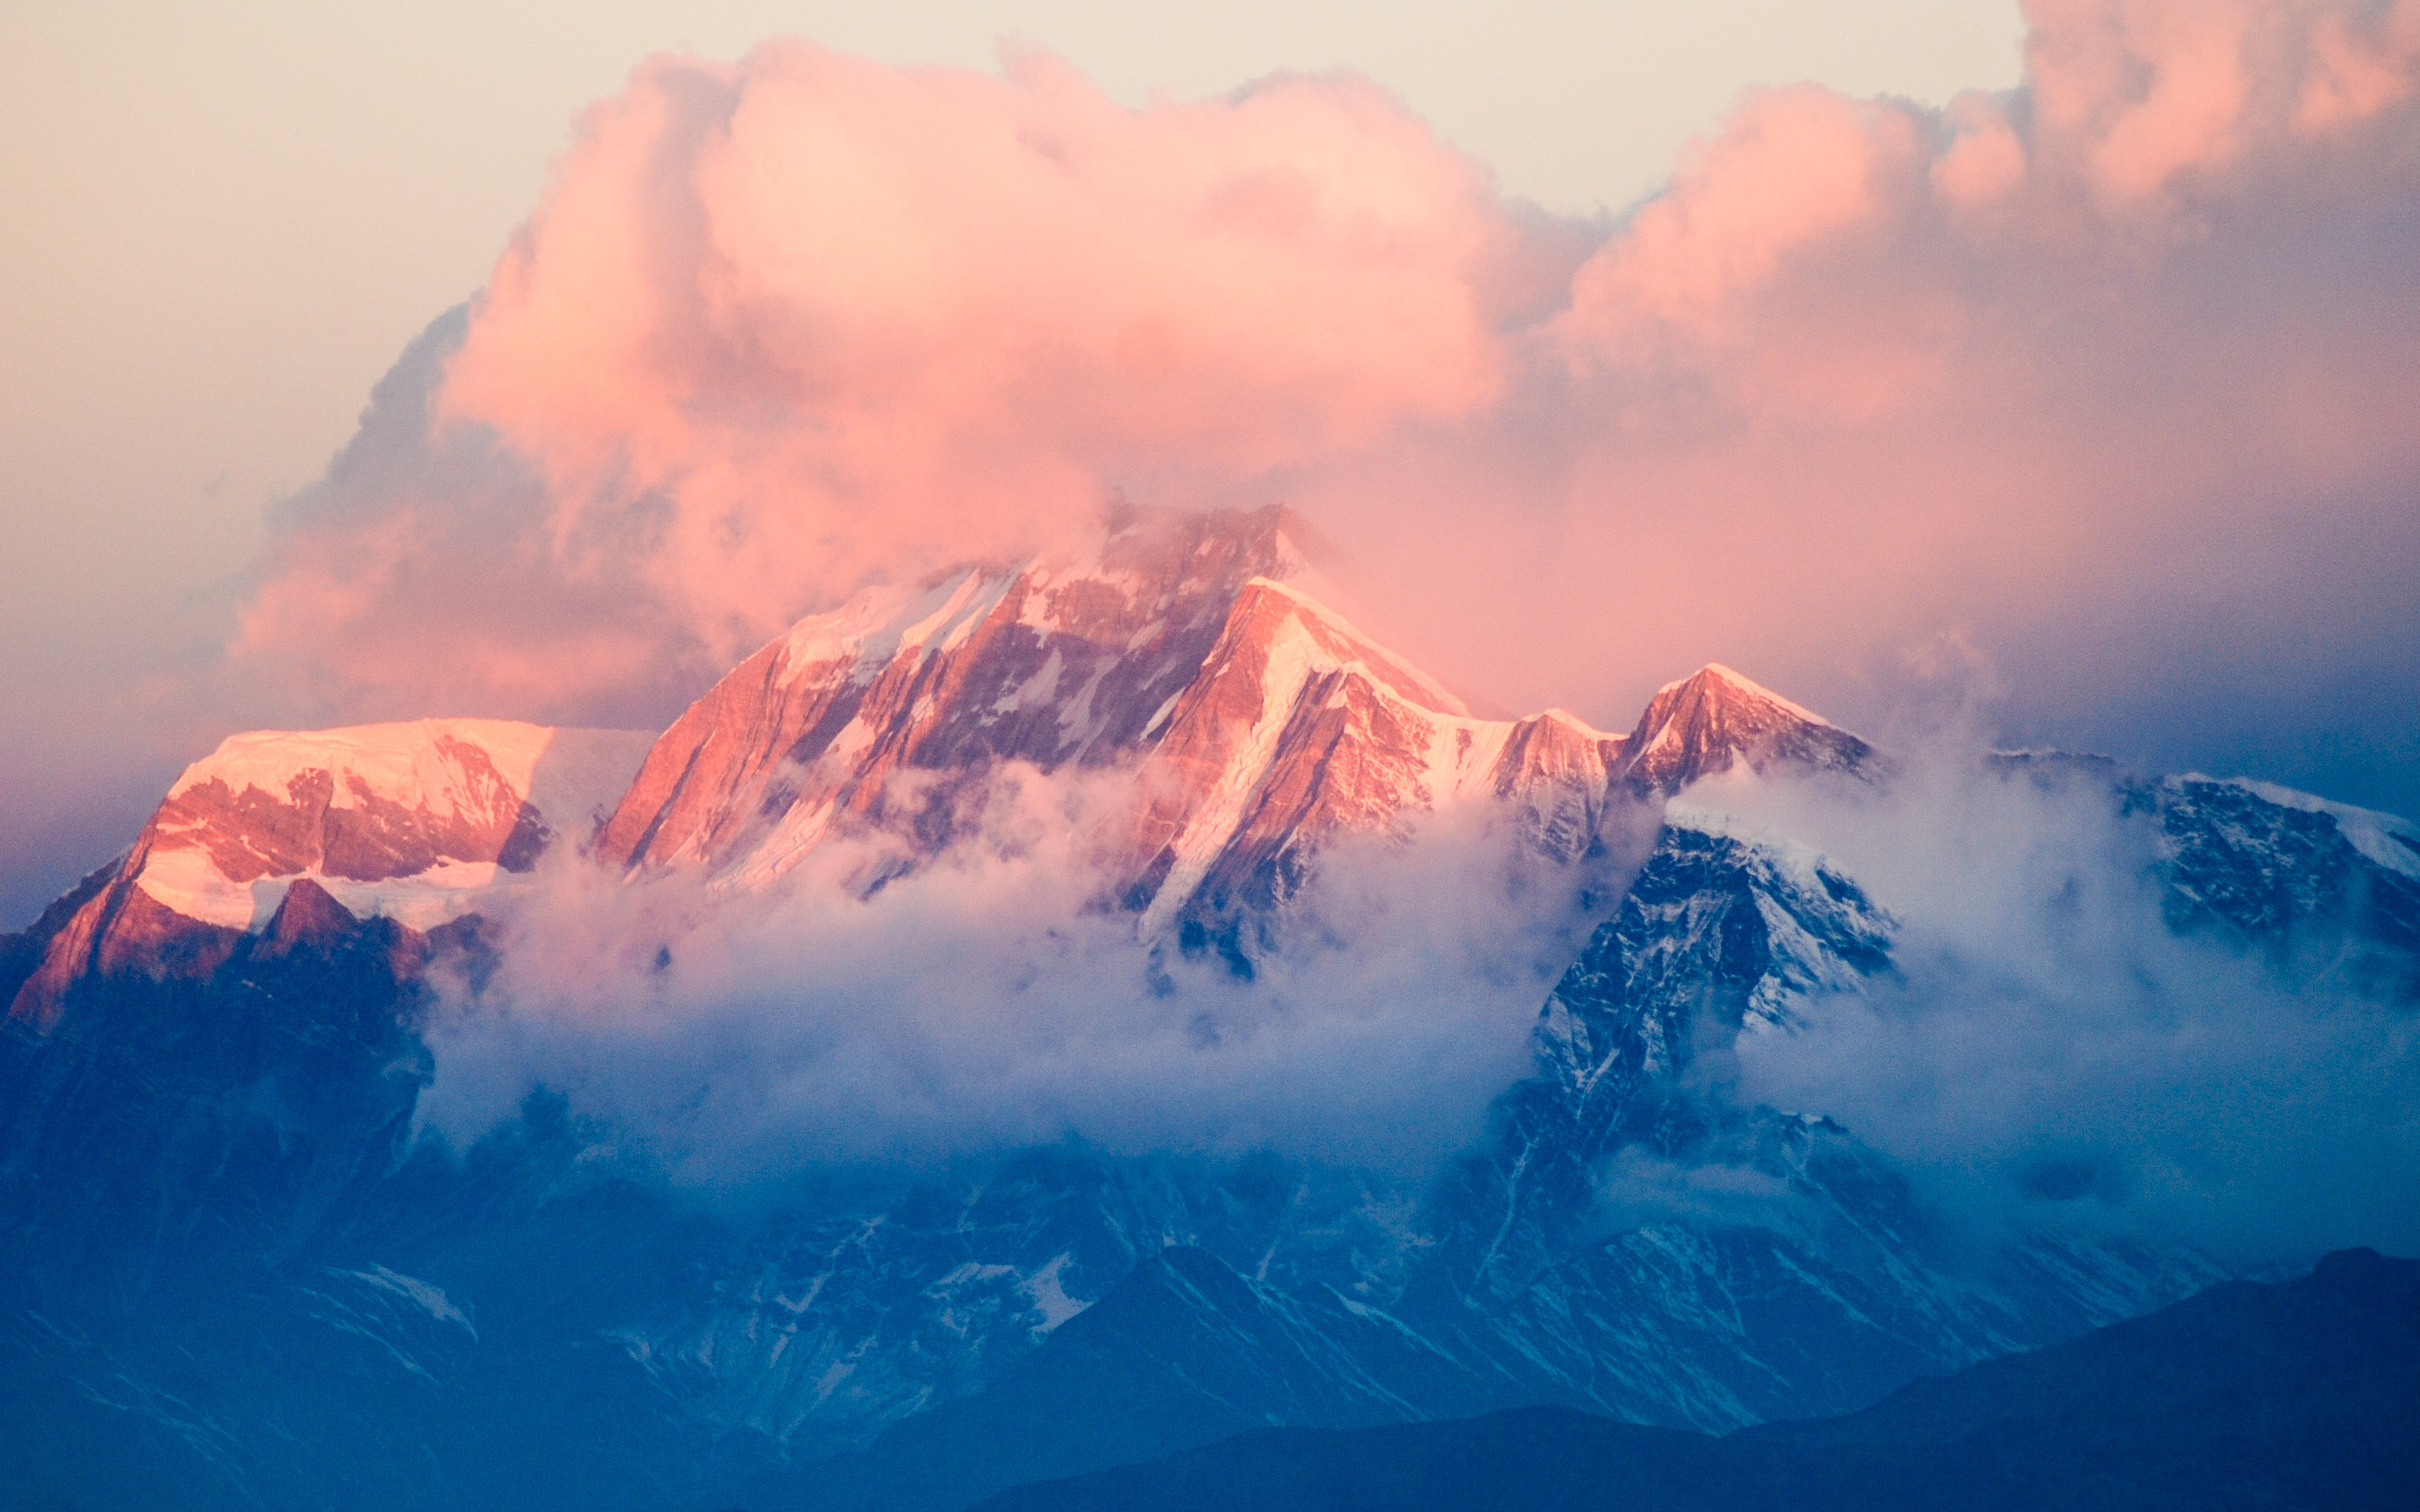 A snowy mountain bathed in pastel-colored light during sunset